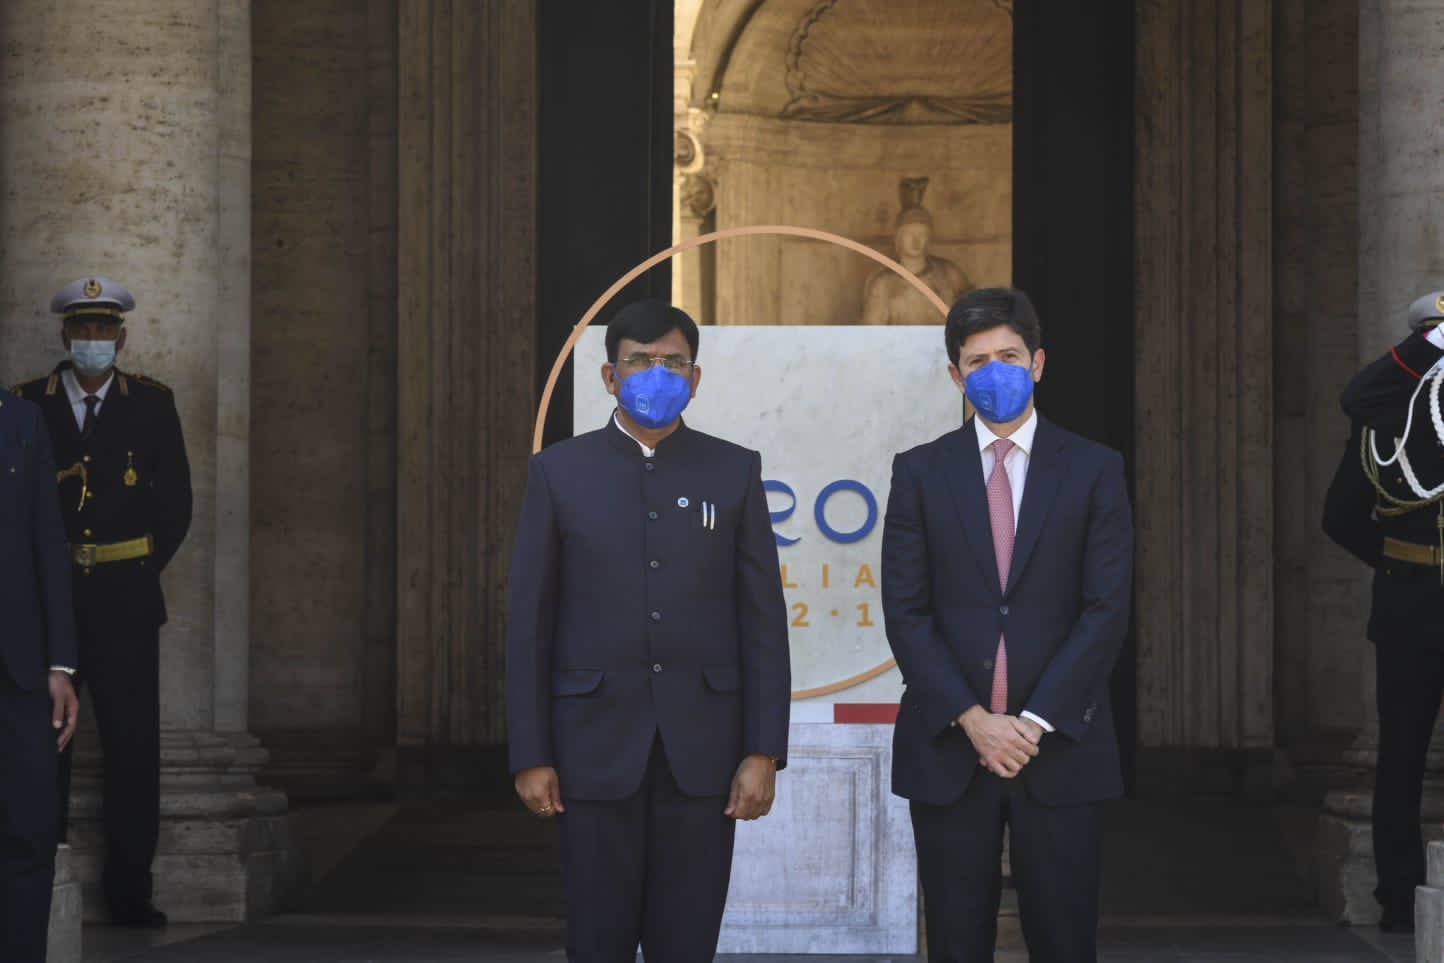 Visit of Hon'ble Health Minister Shri Mansukh Mandaviya to Rome on the occasion of G20 Health Ministers' Meeting (Sept. 5/6, 2021)